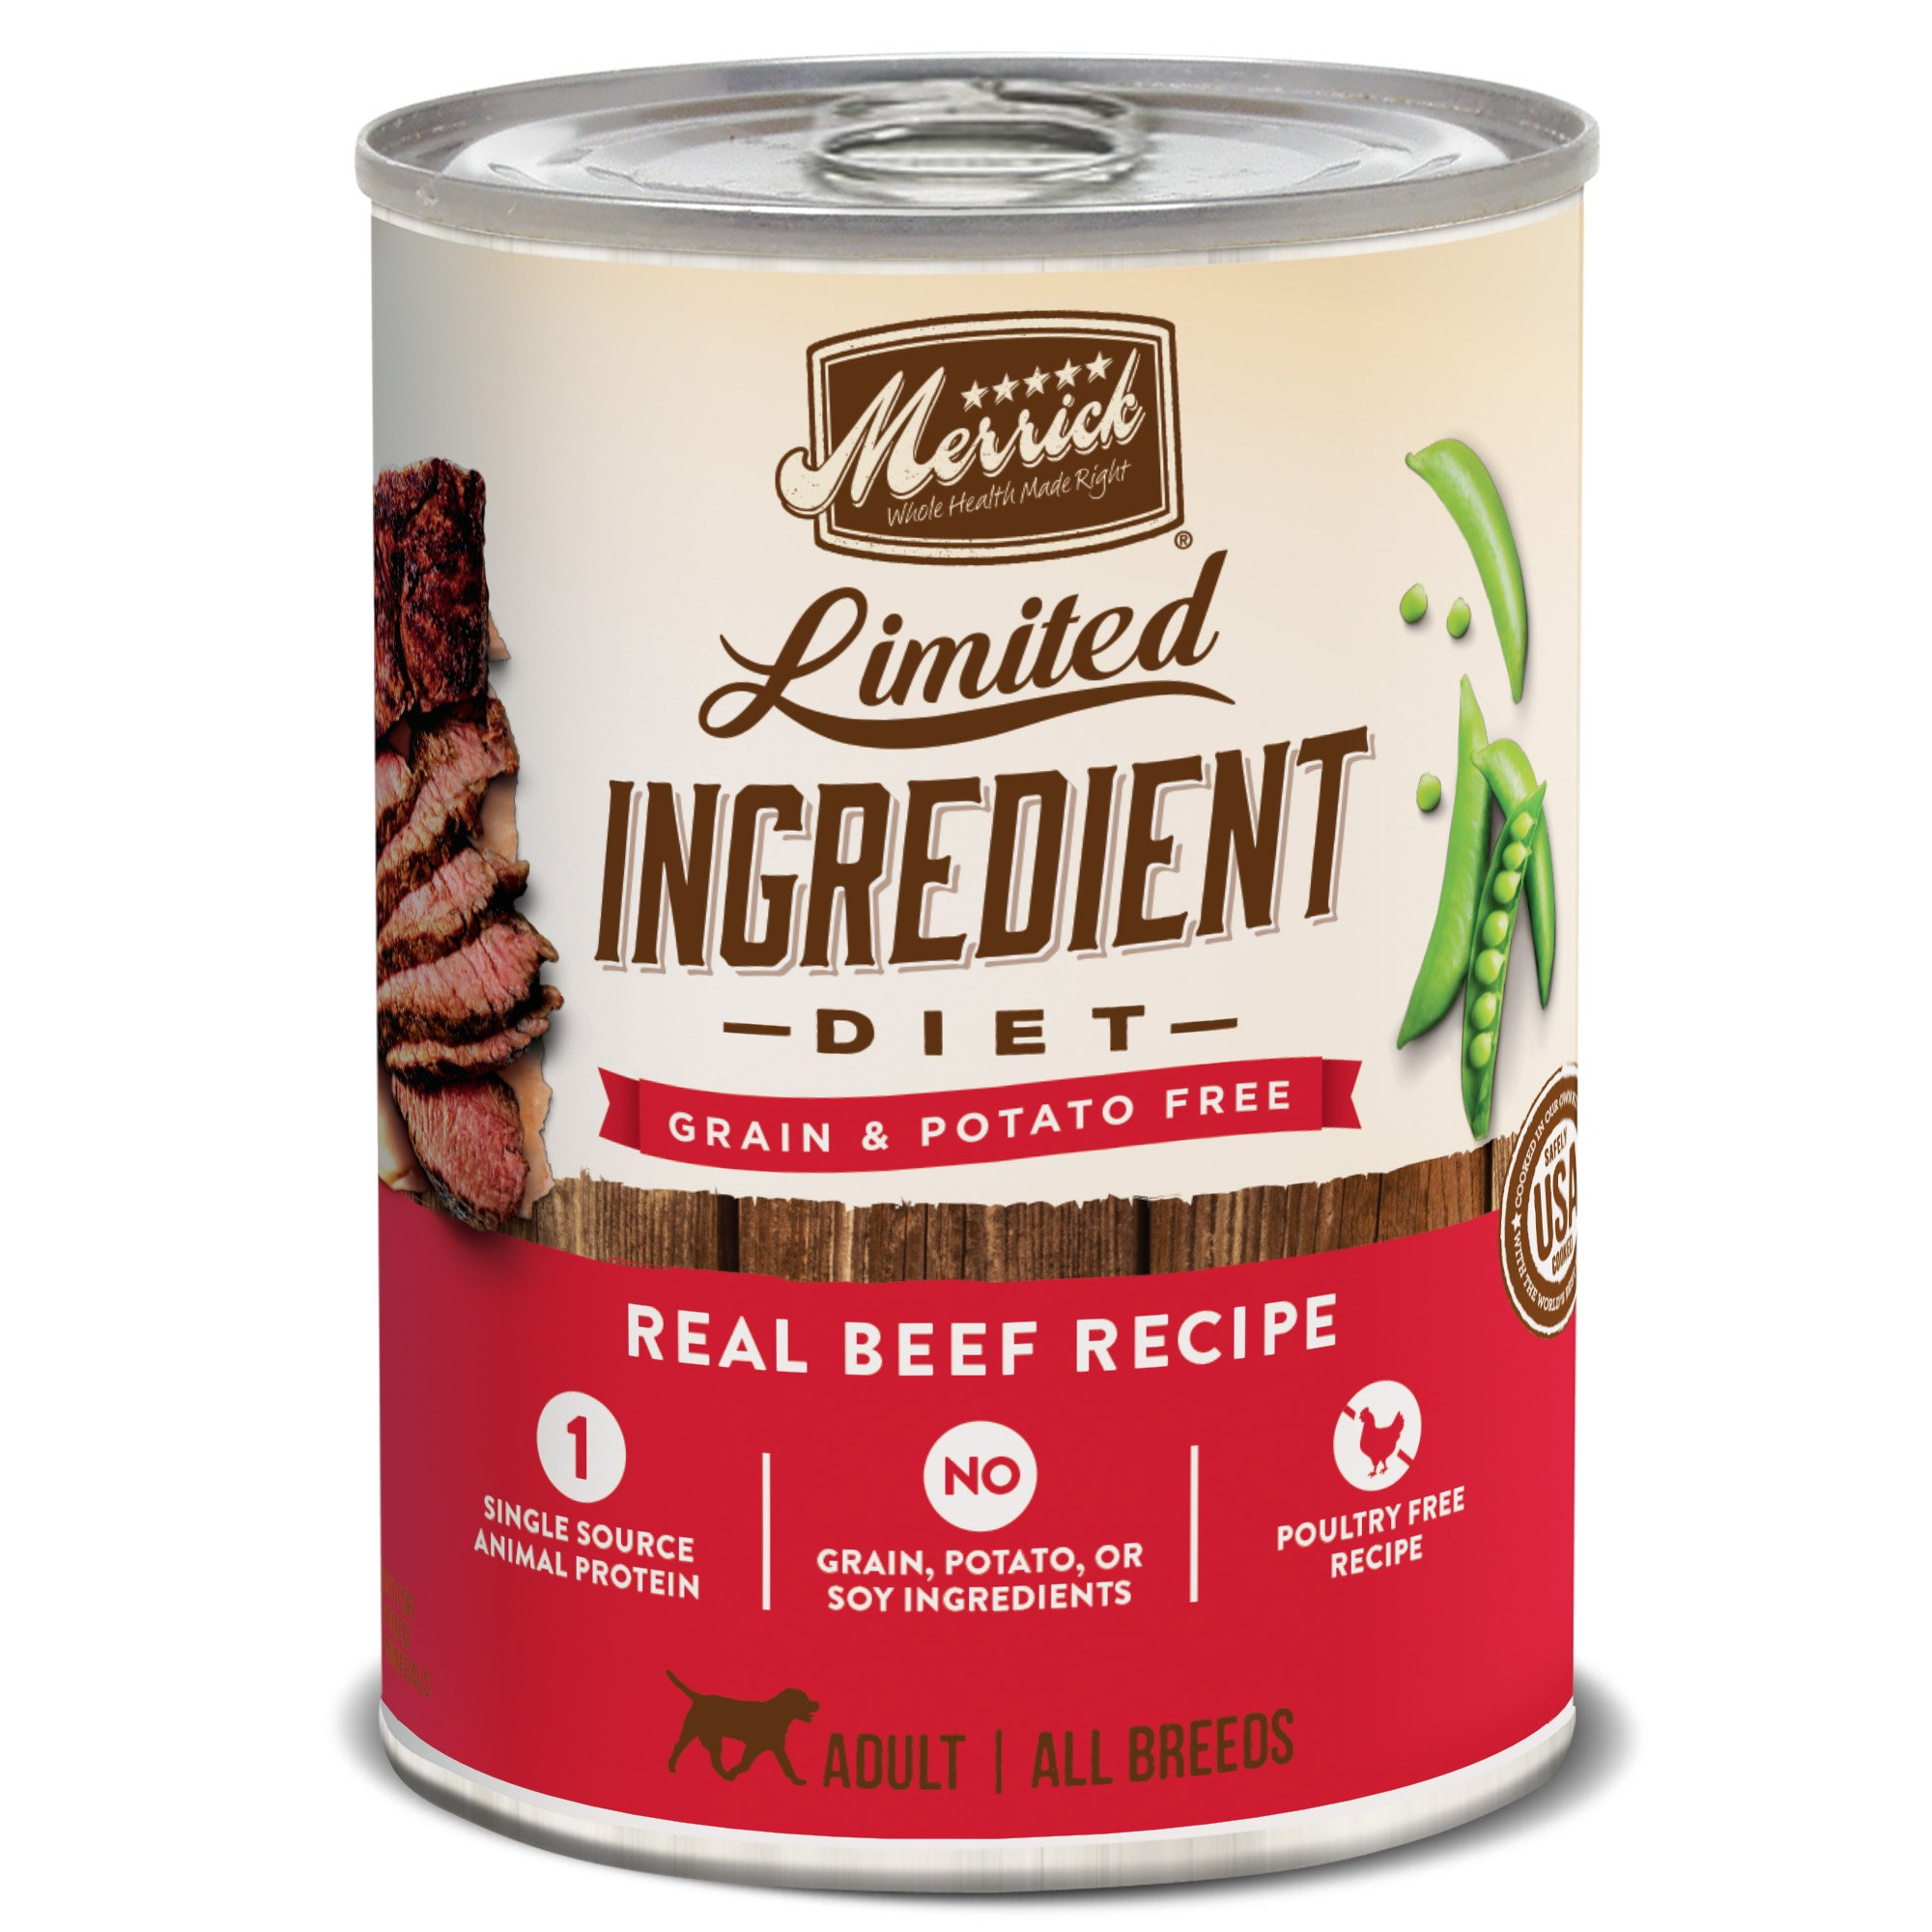 Merrick Grain Free Limited Ingredient Diet Beef Recipe Wet Dog Food 12.7 oz, Case of 12